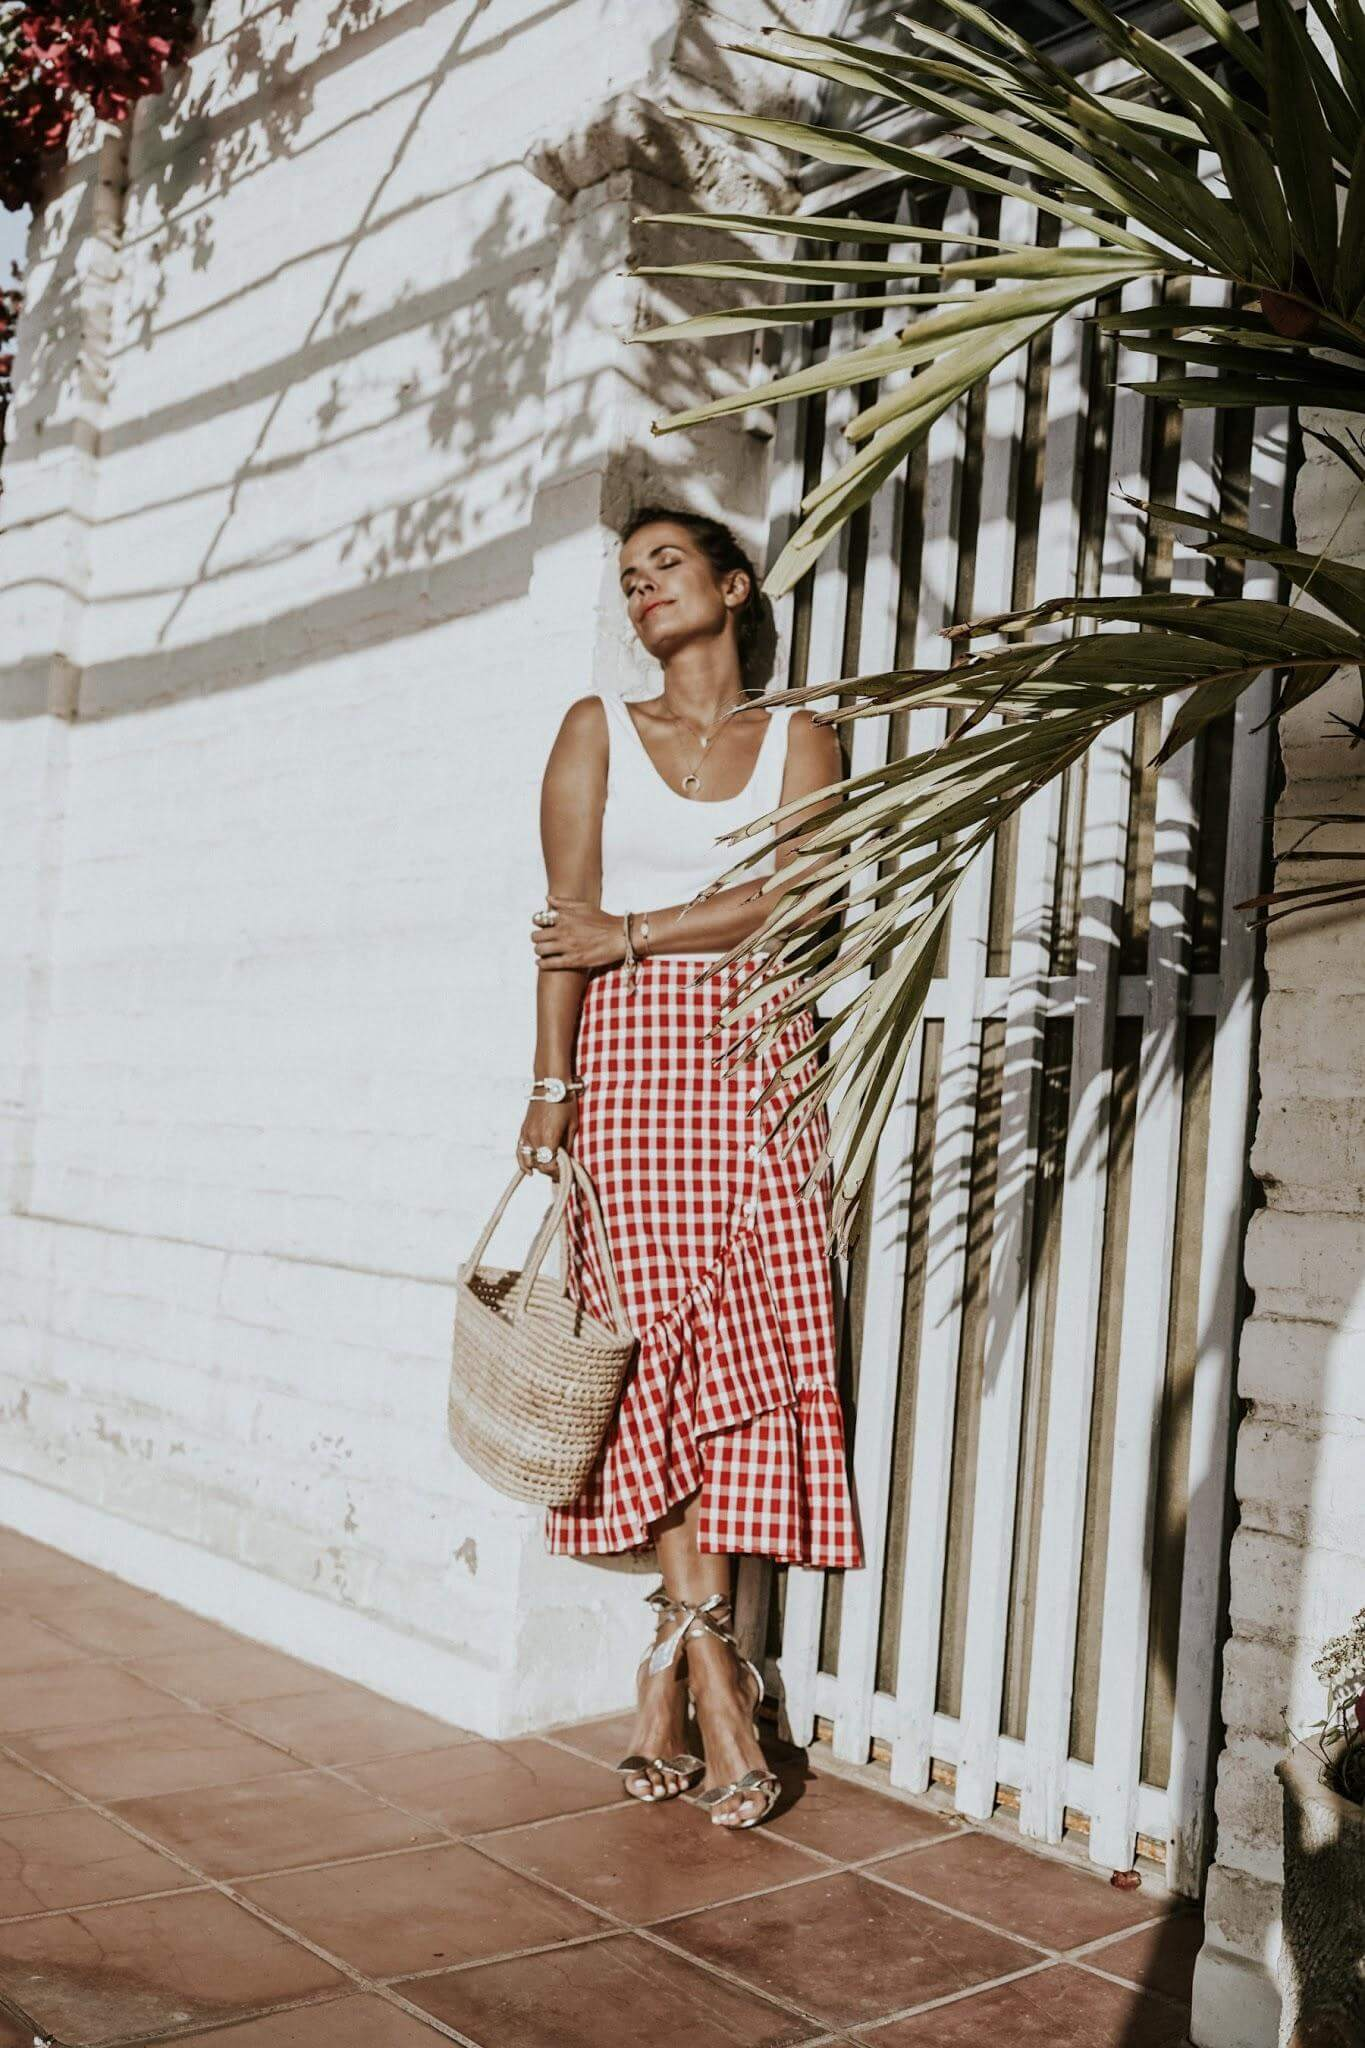 Wrap skirt with side ruffle in gingham print screams summer. Wear it with a simple white tank top and basket bag. #summerstyle #summerfashion